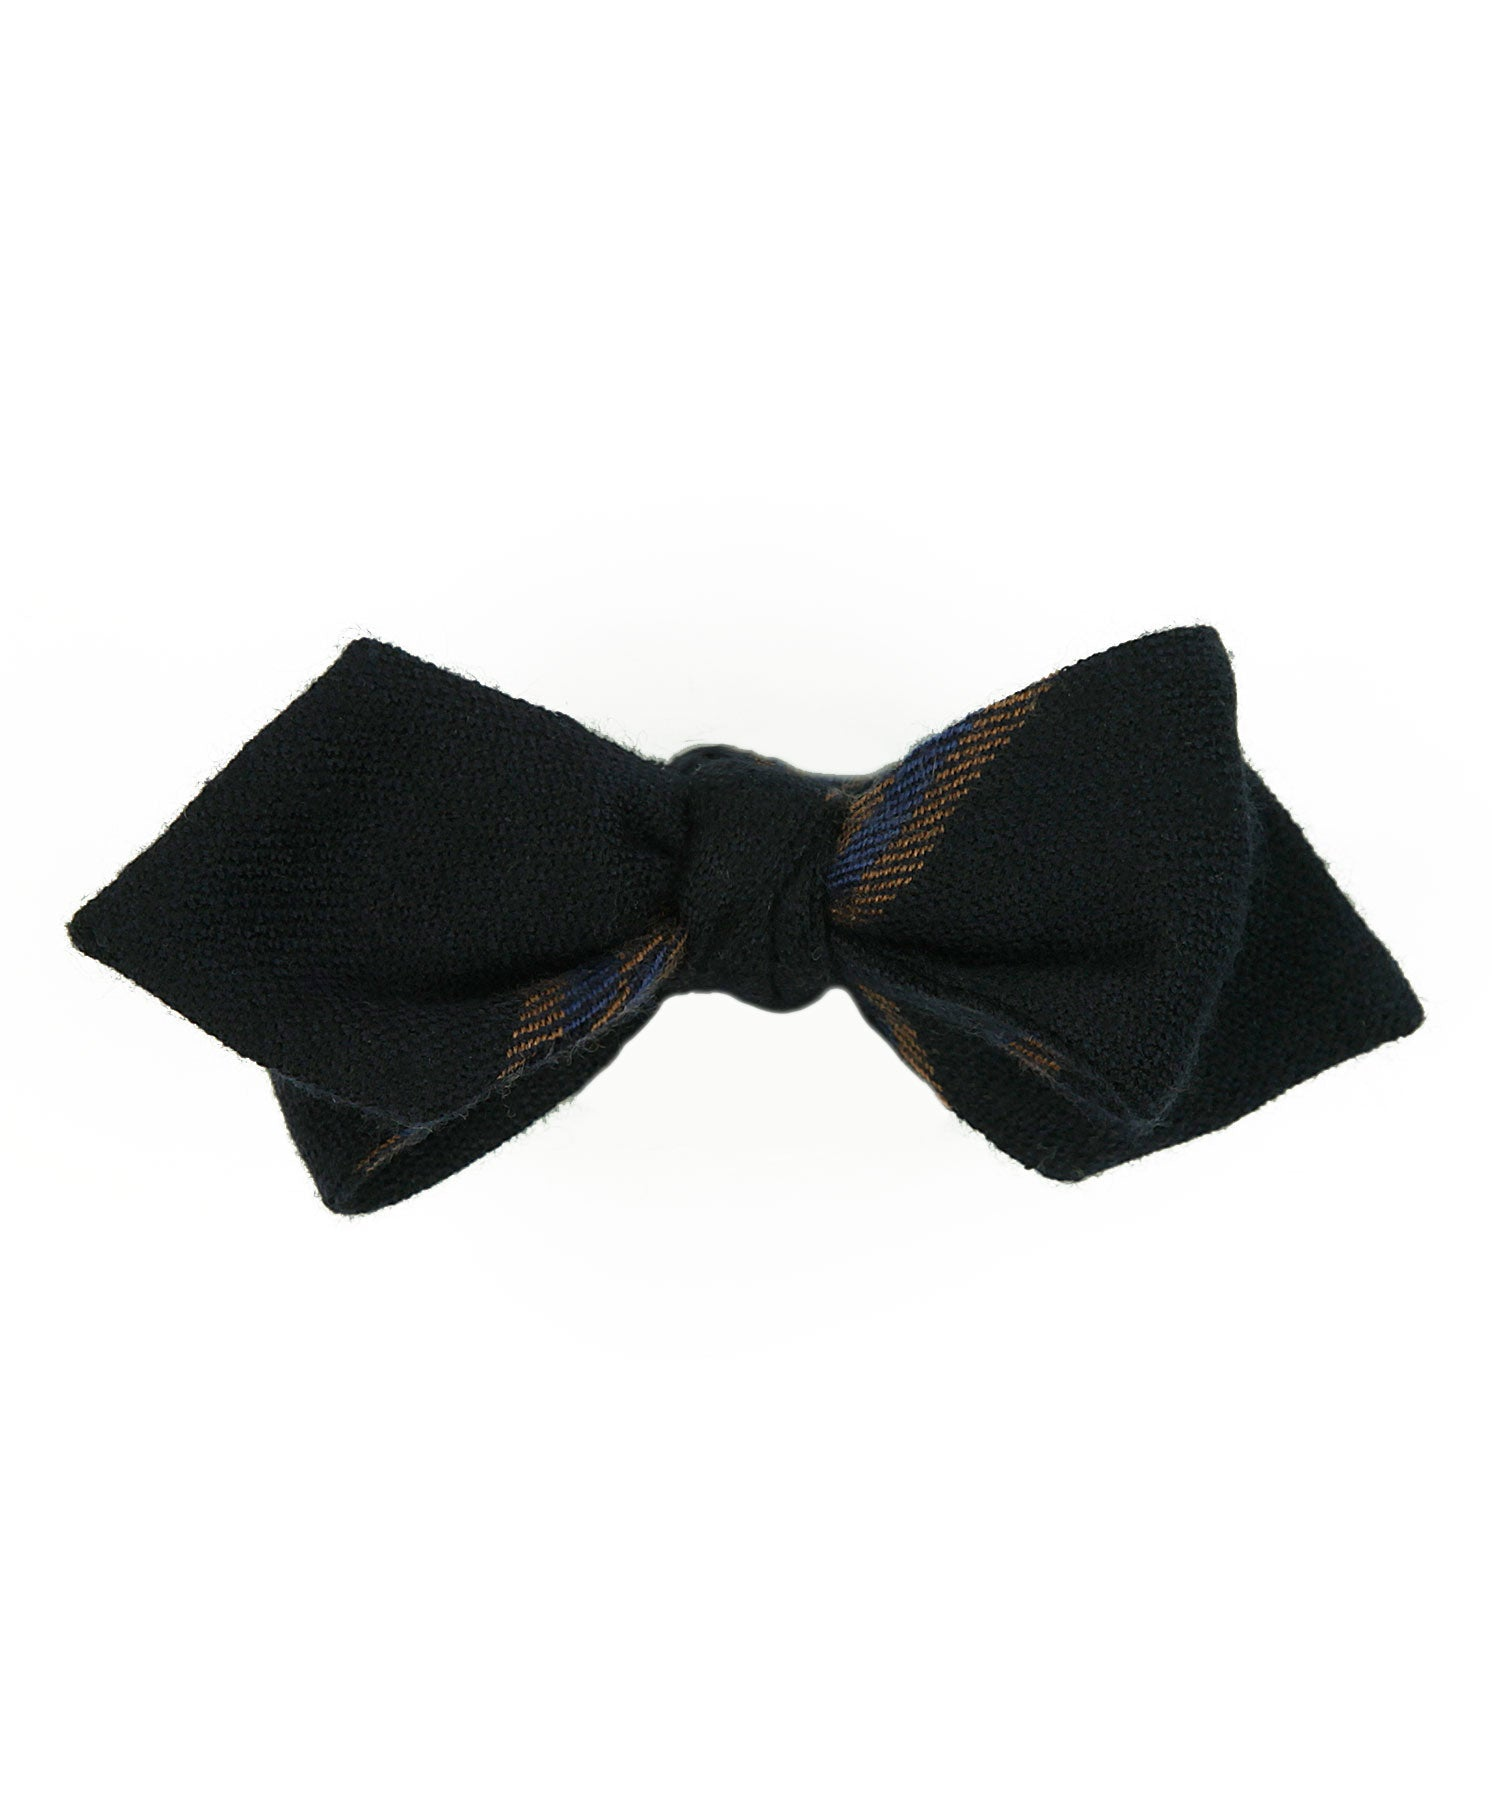 The Cashmere No. 1 Bow Tie